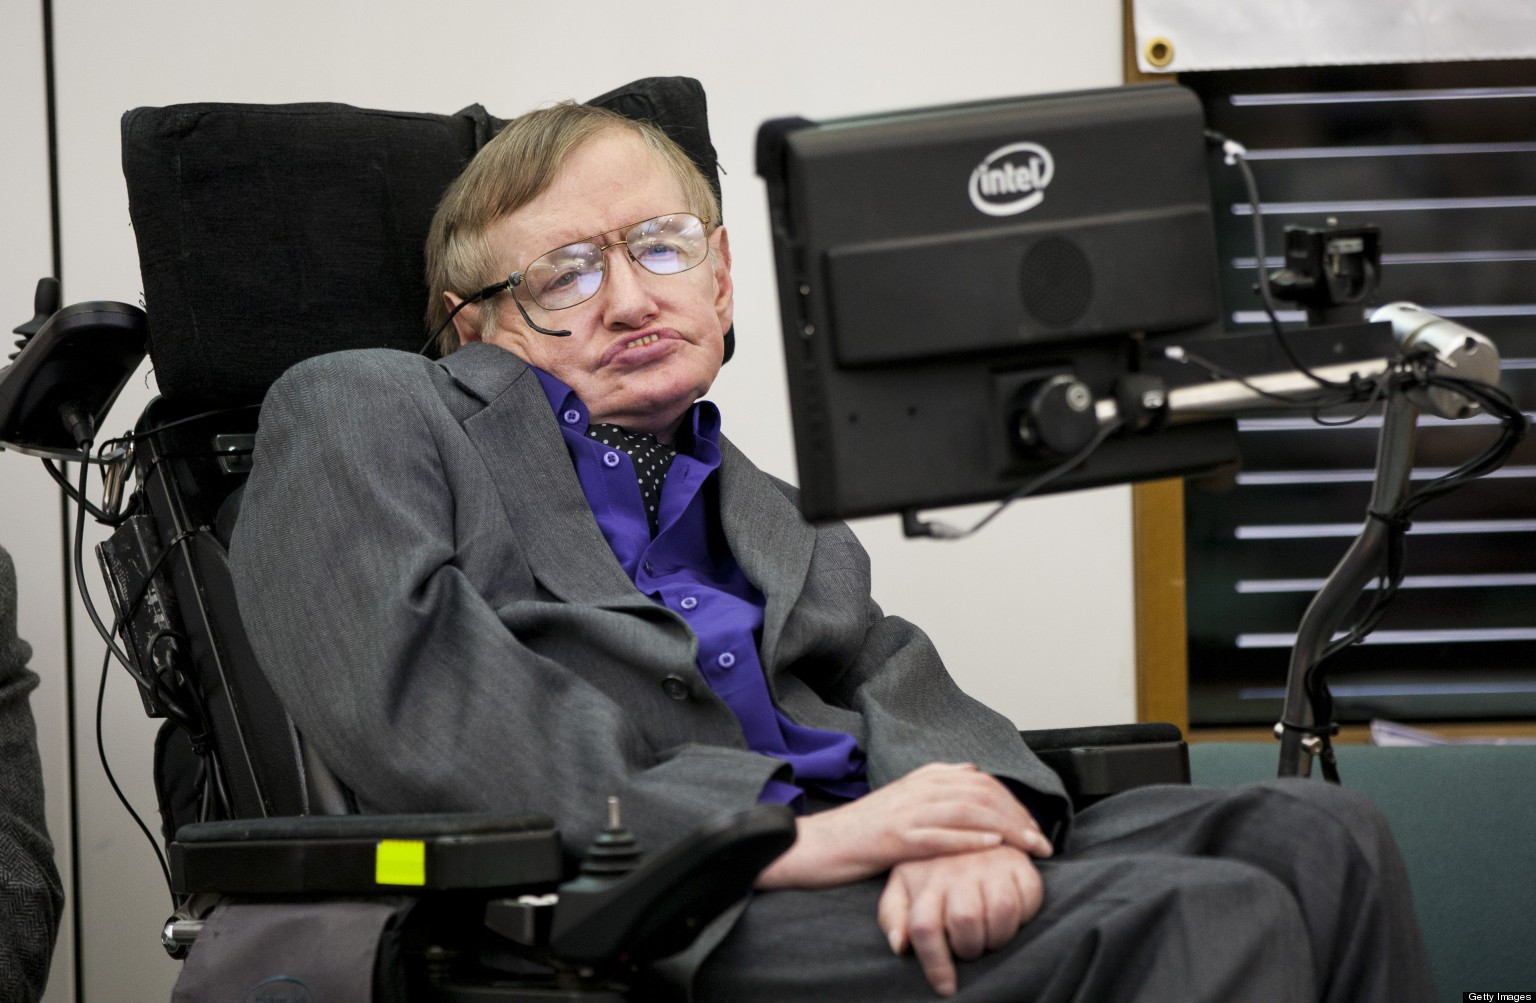 LONDON, UNITED KINGDOM - APRIL 30: Stephen Hawking  makes an appearance to show support for the Breathe On UK charity at  on April 30, 2013 in London, England. (Photo by John Phillips/UK Press via Getty Images)